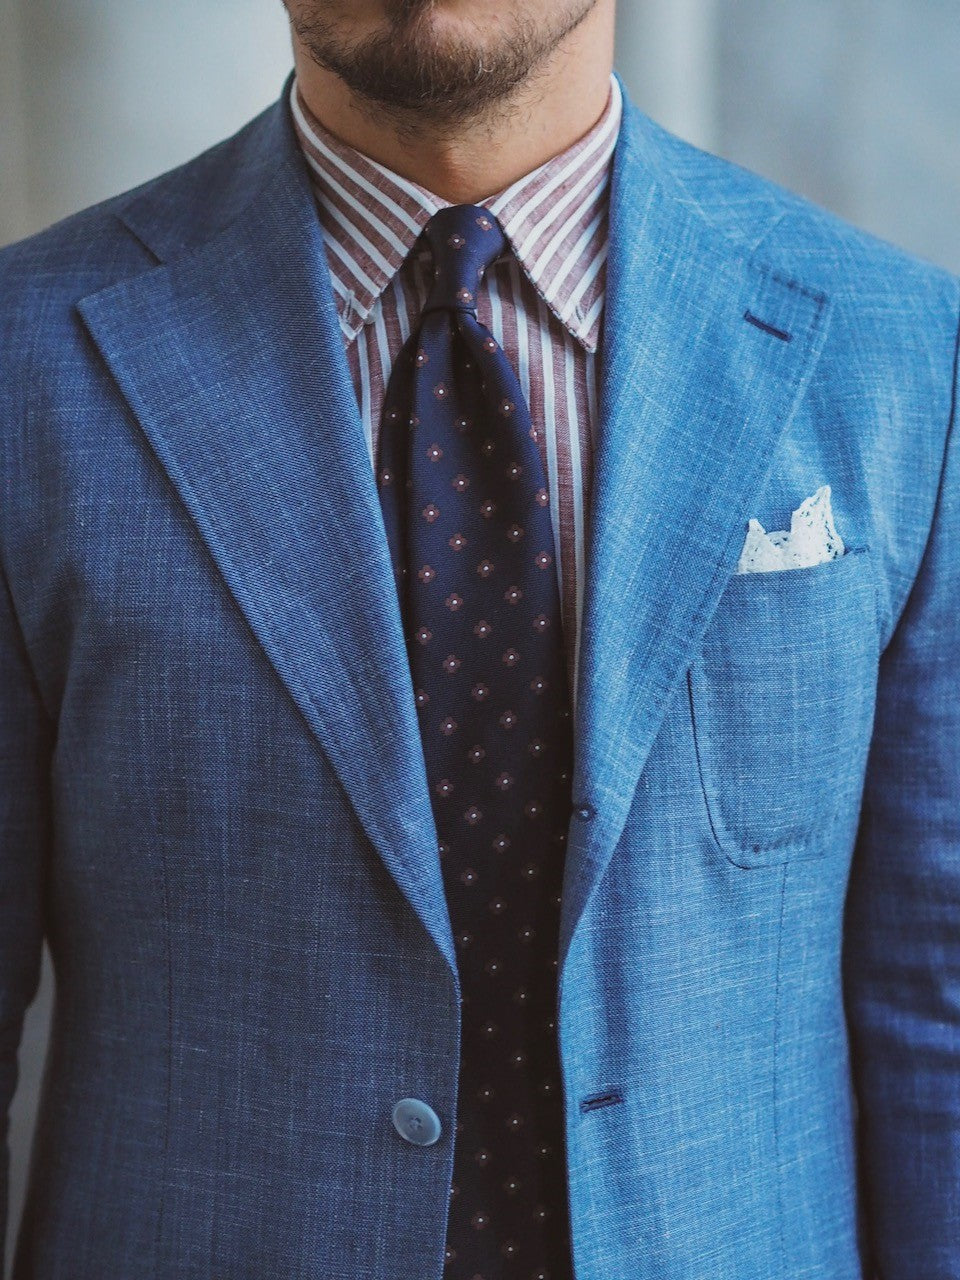 Light blue suit and striped shirt details